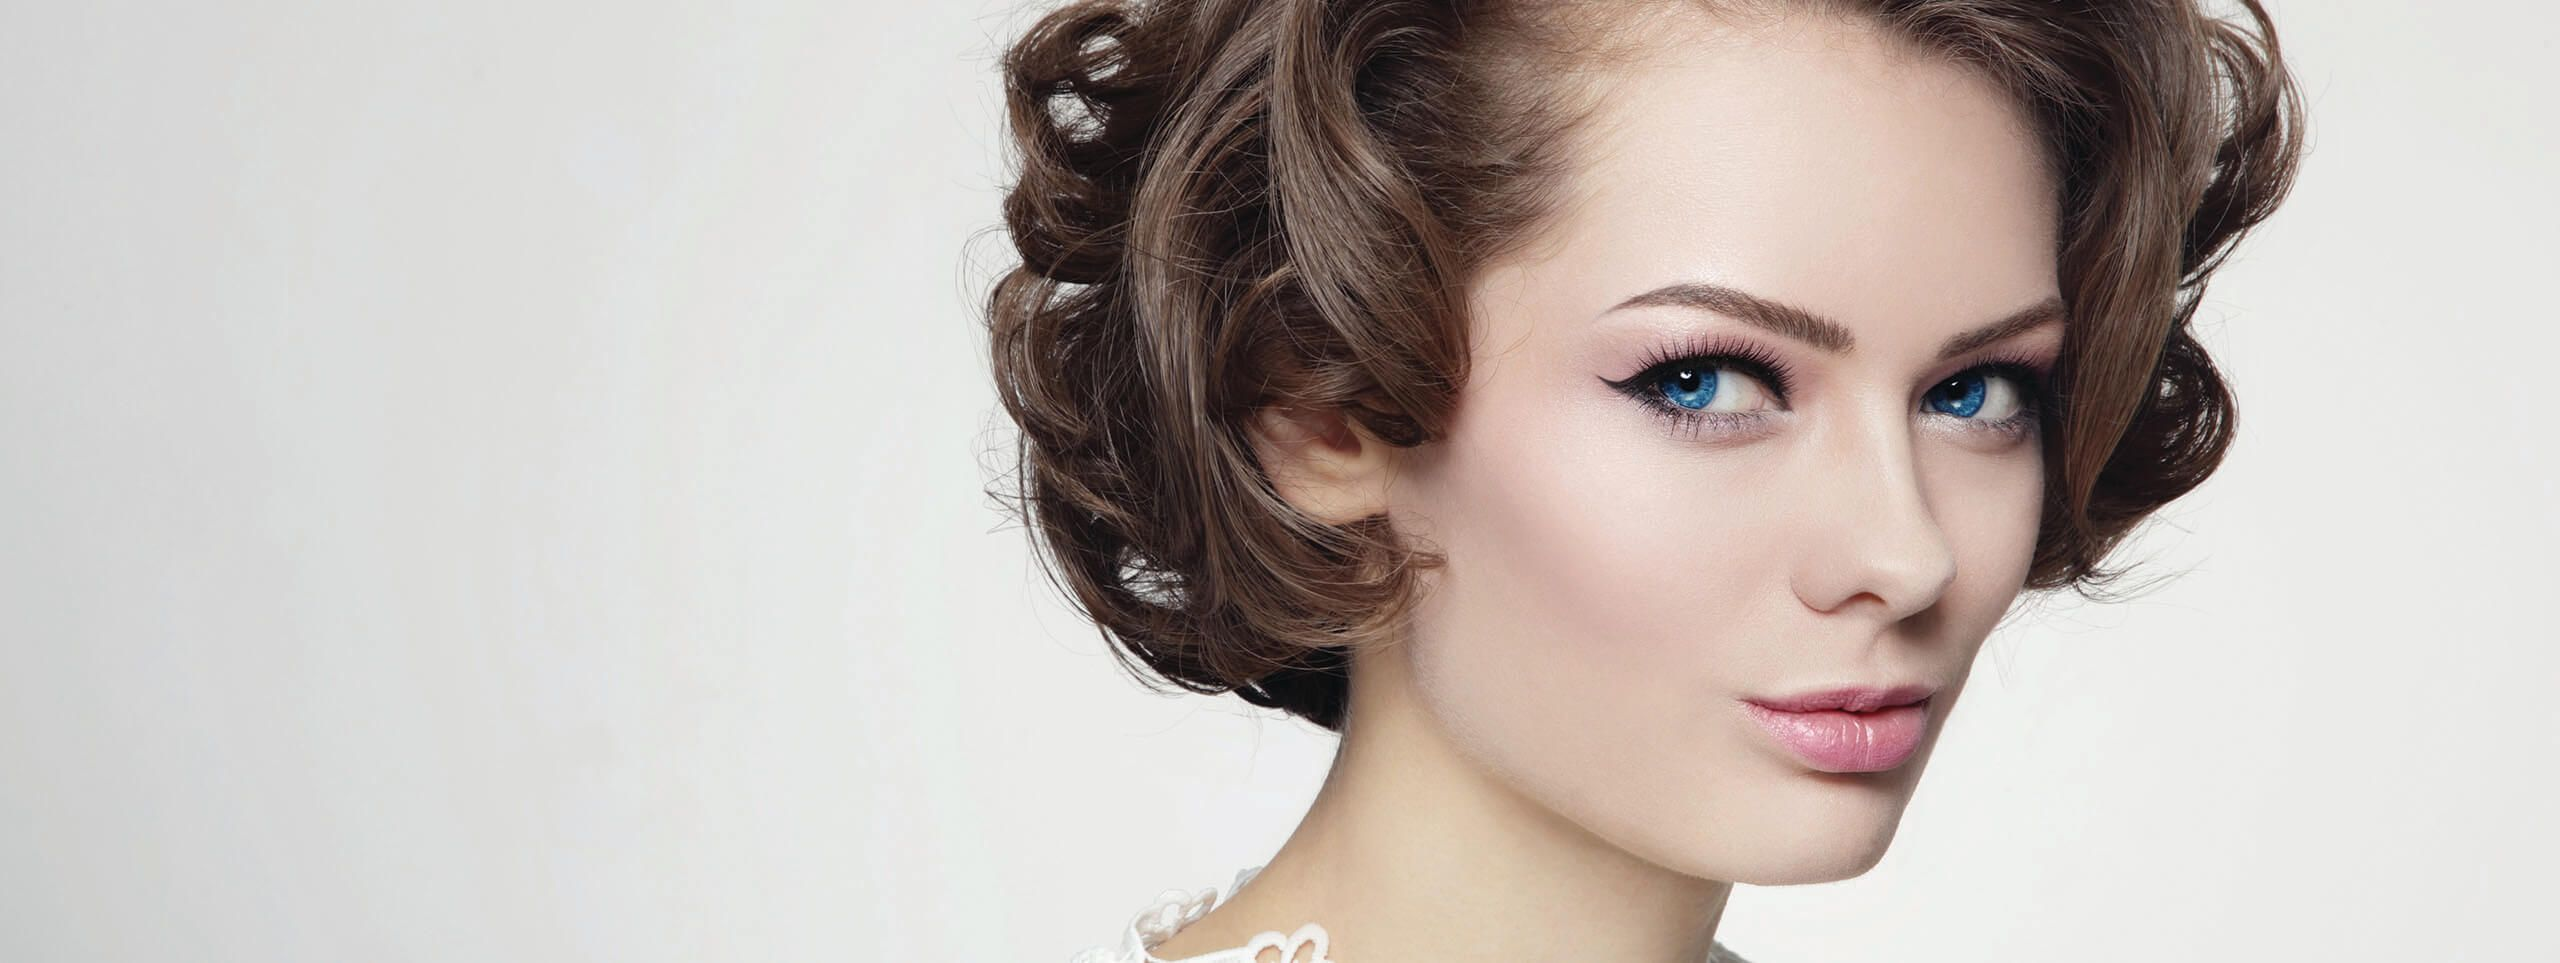 Woman with sixties hairstyle